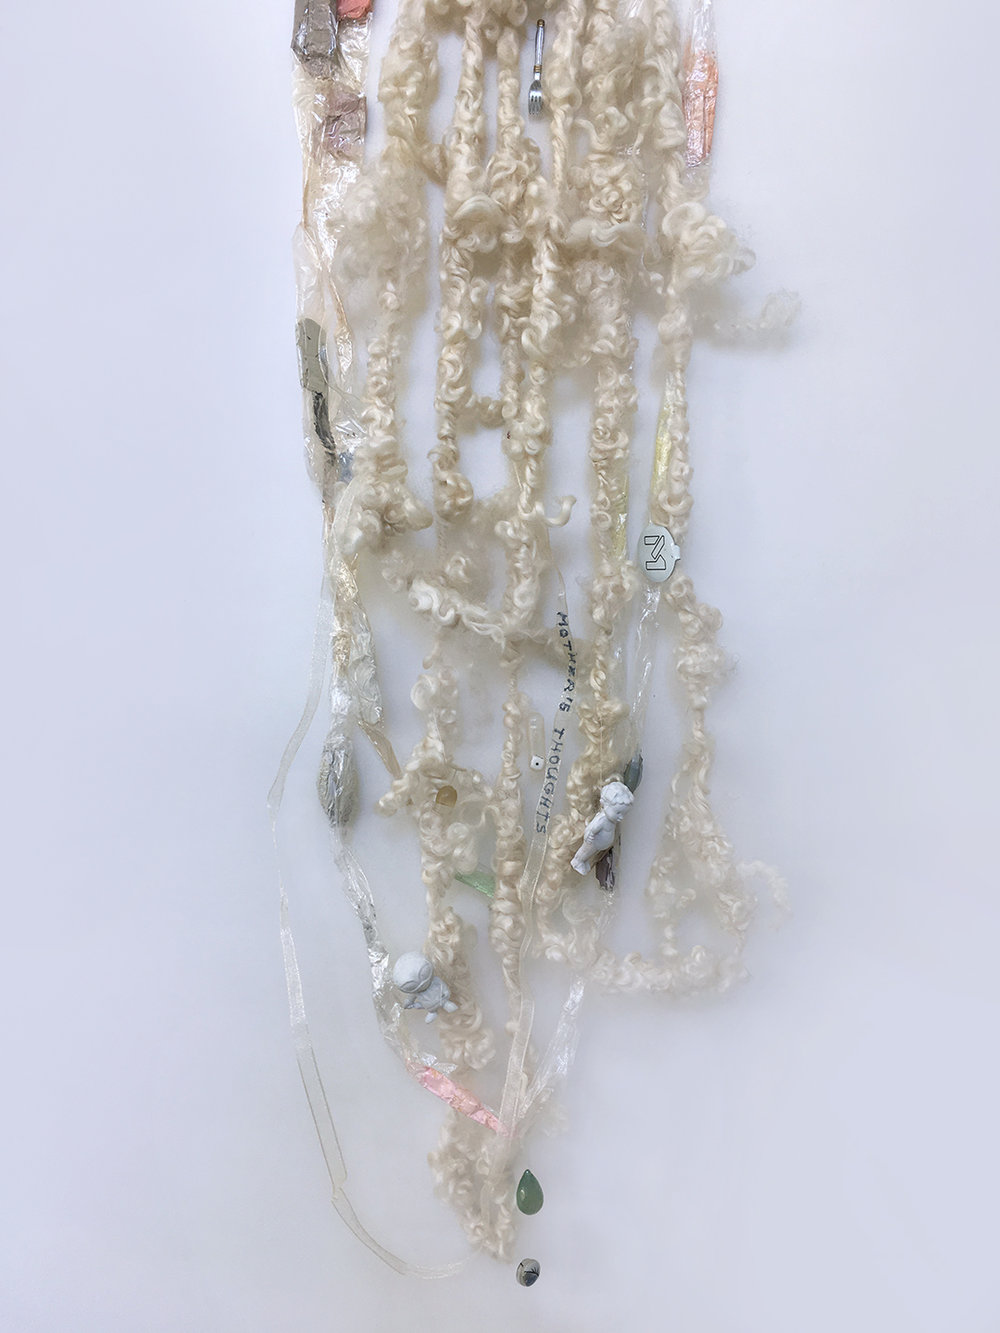 Me as a Goddess, 1, 2008. Detail. Aproximatively 6' long. Sheep wool, plastic, oil paint, ribbon, chalcedony stone and thread.